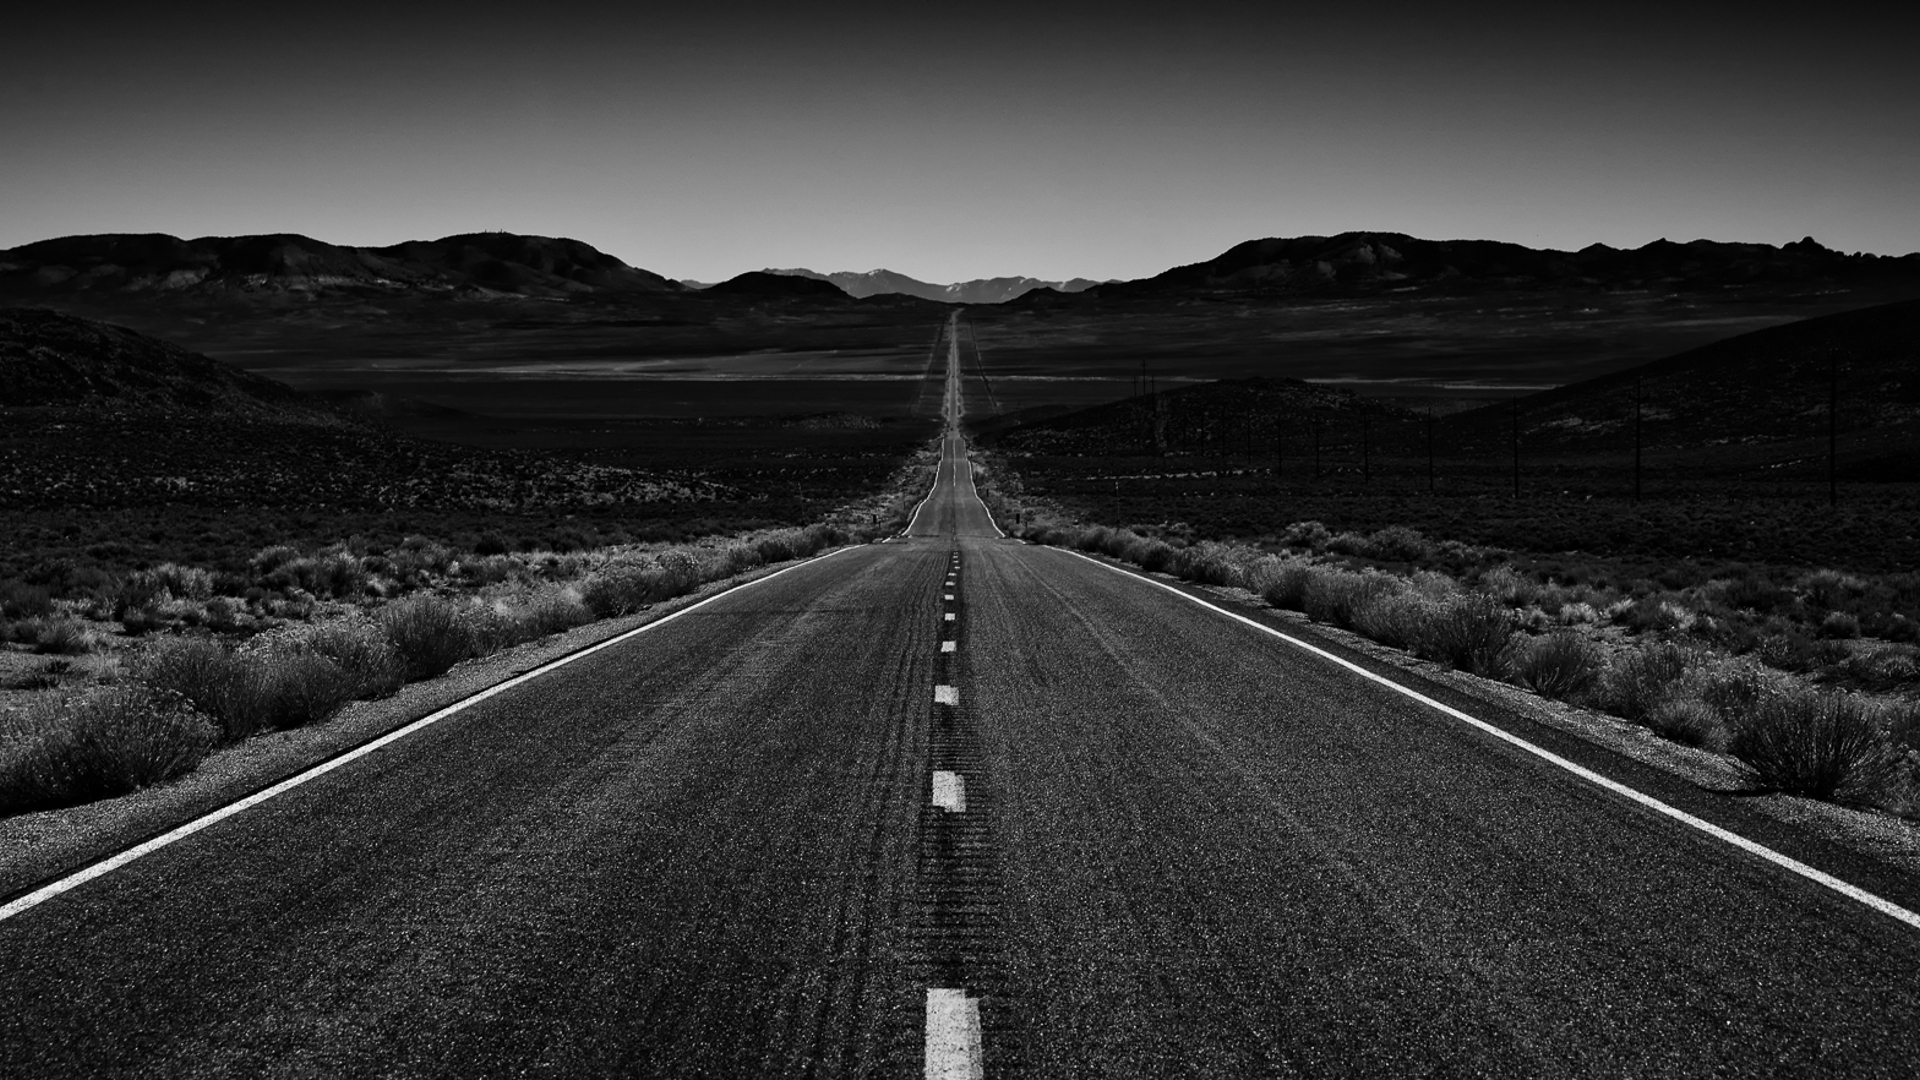 Endless Road Wallpaper, HD Other 4K Wallpapers, Images ...